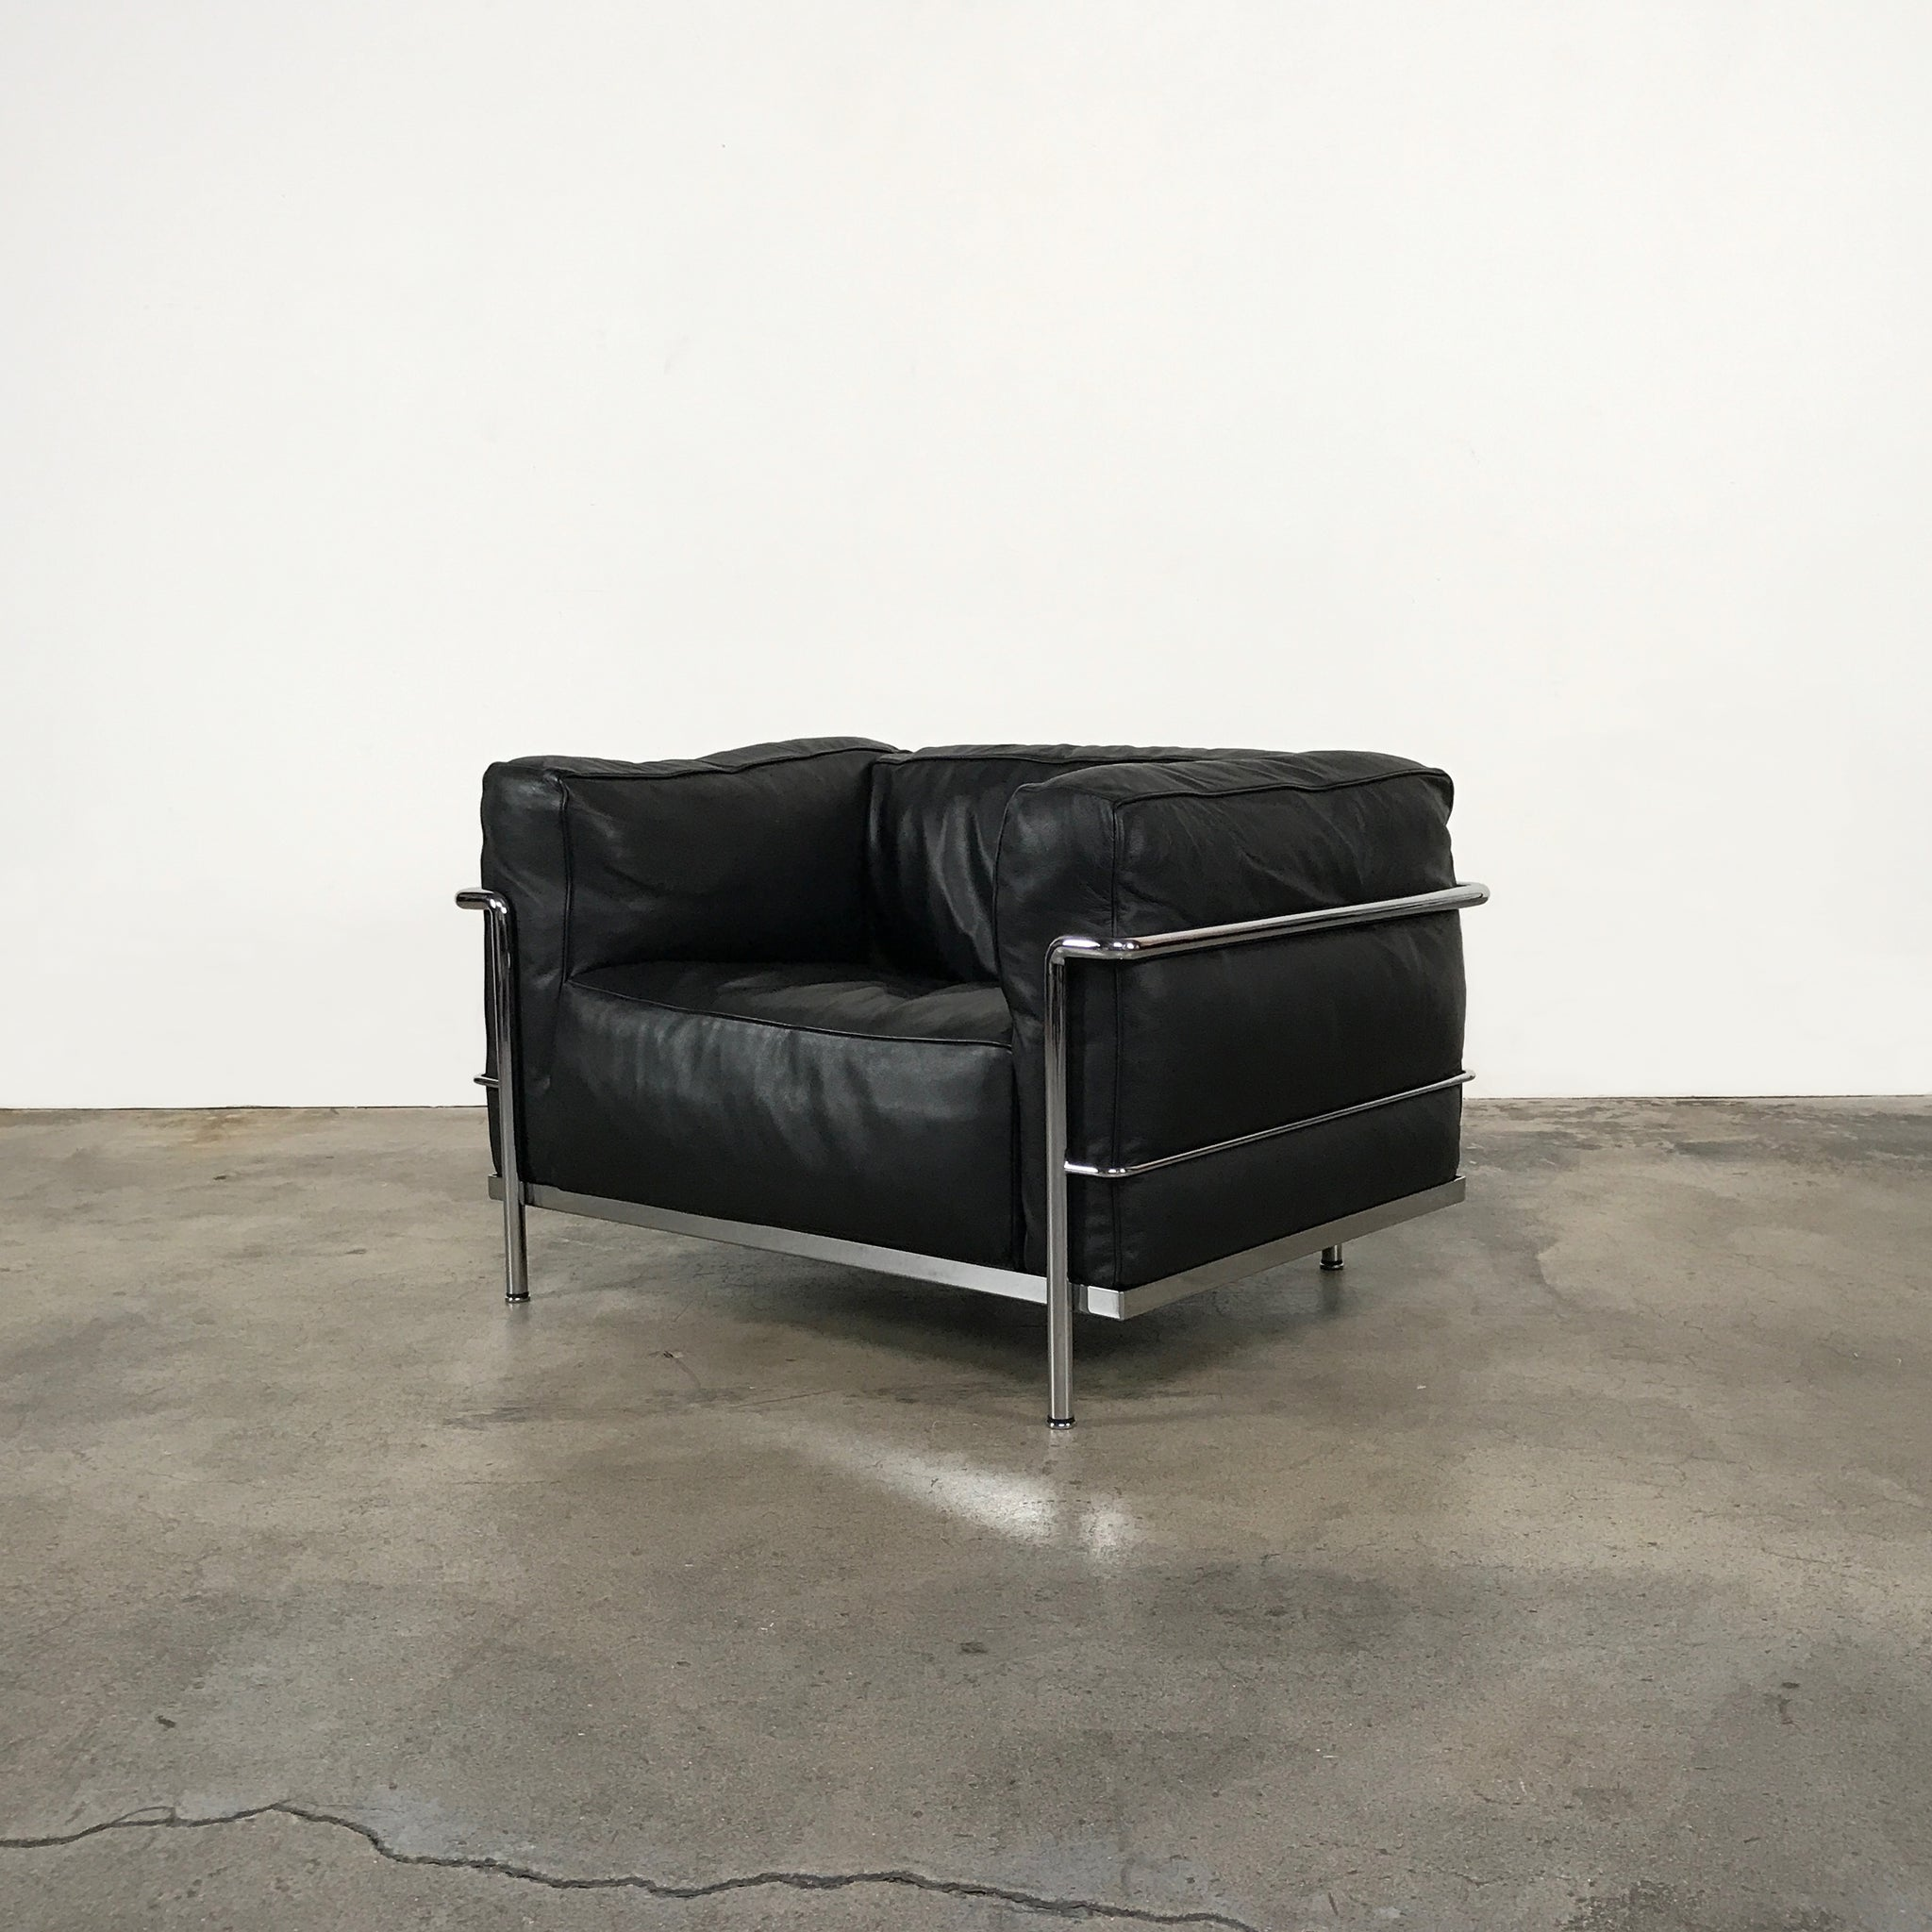 id lounge chair retouched furniture mariani leather postmodern at f chairs pair seating view black version pace of org